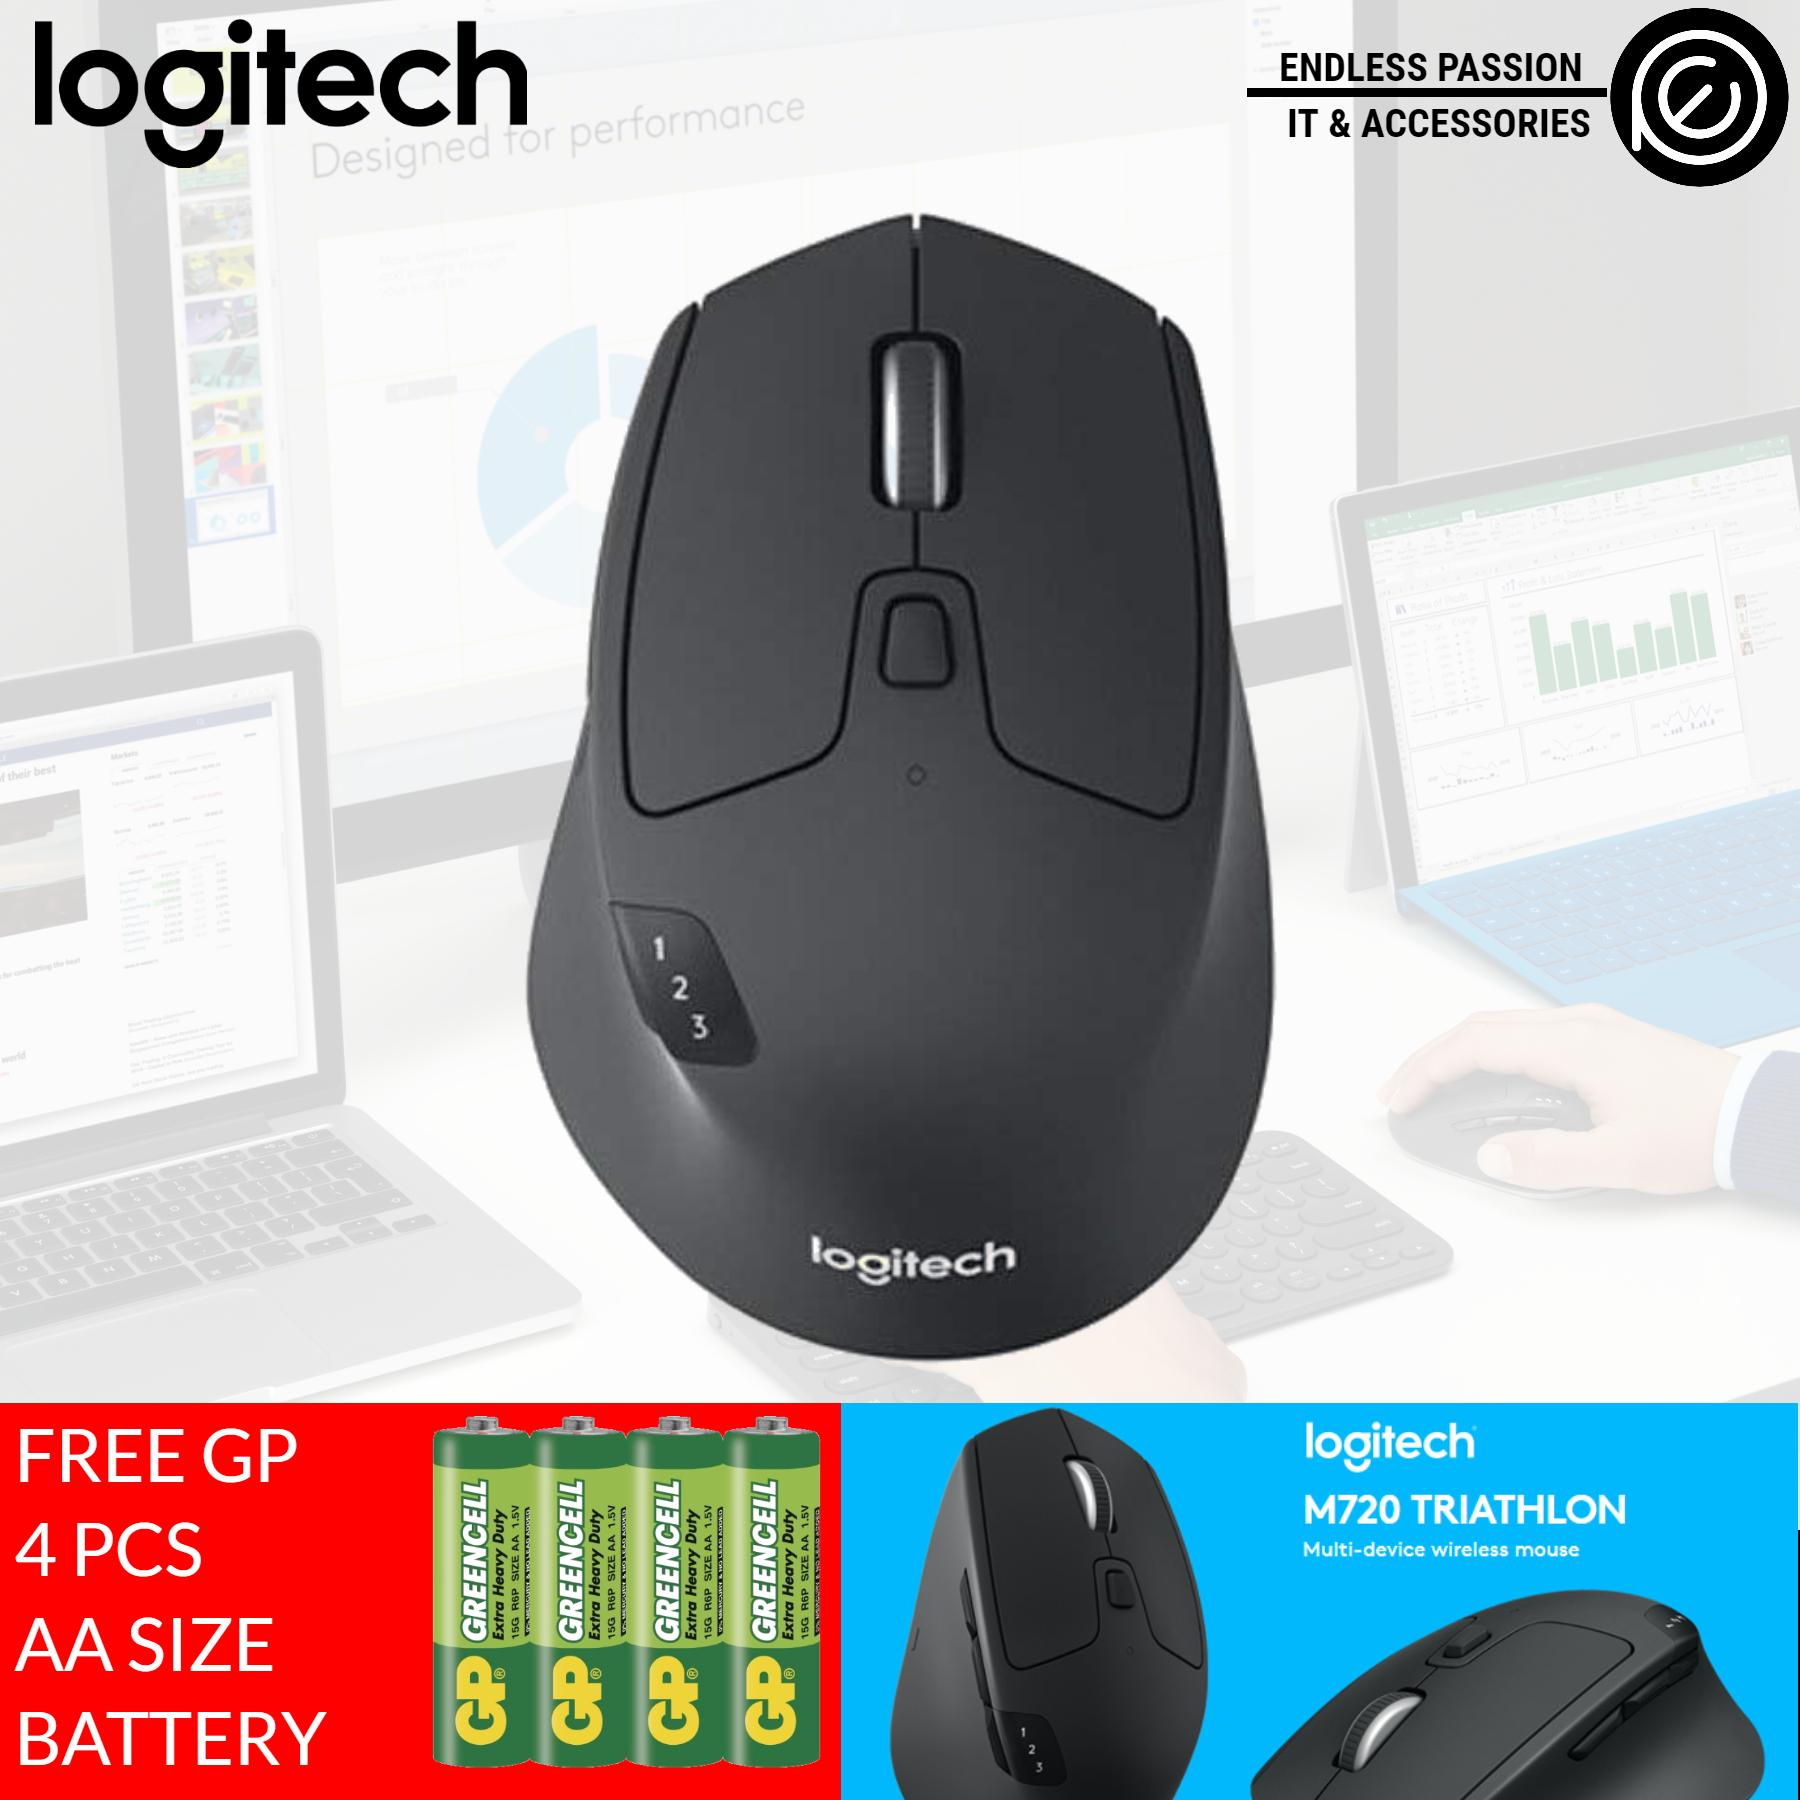 Logitech M720 Triathalon Multi-Device Wireless Mouse with FLOW Cross-Computer Control and File Sharing for PC and Mac